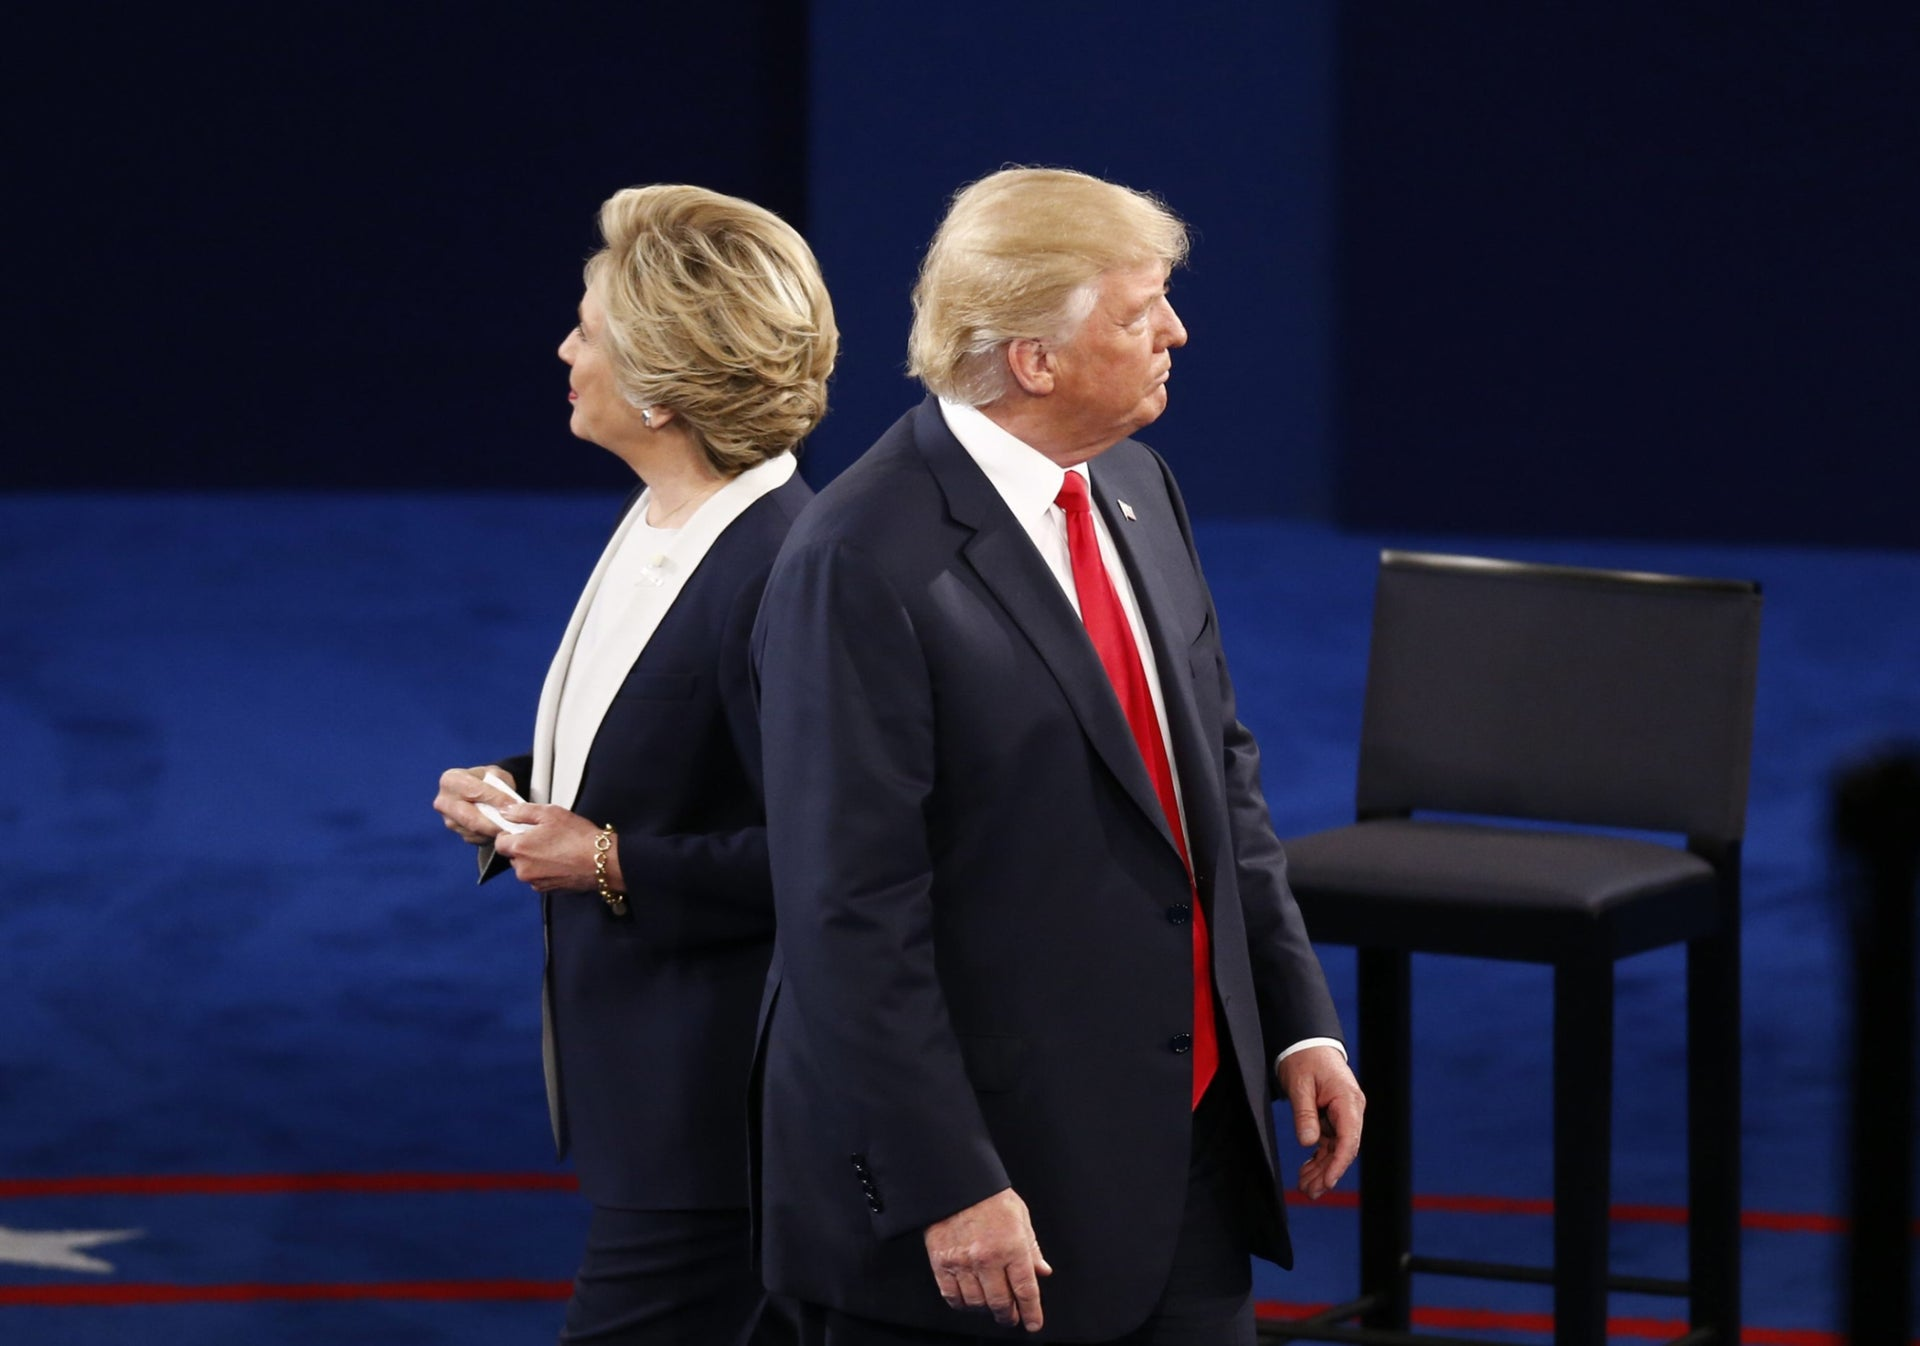 Hillary Clinton and Donald Trump on stage during the second U.S. presidential debate at Washington University in St. Louis, Missouri, Oct. 9, 2016.